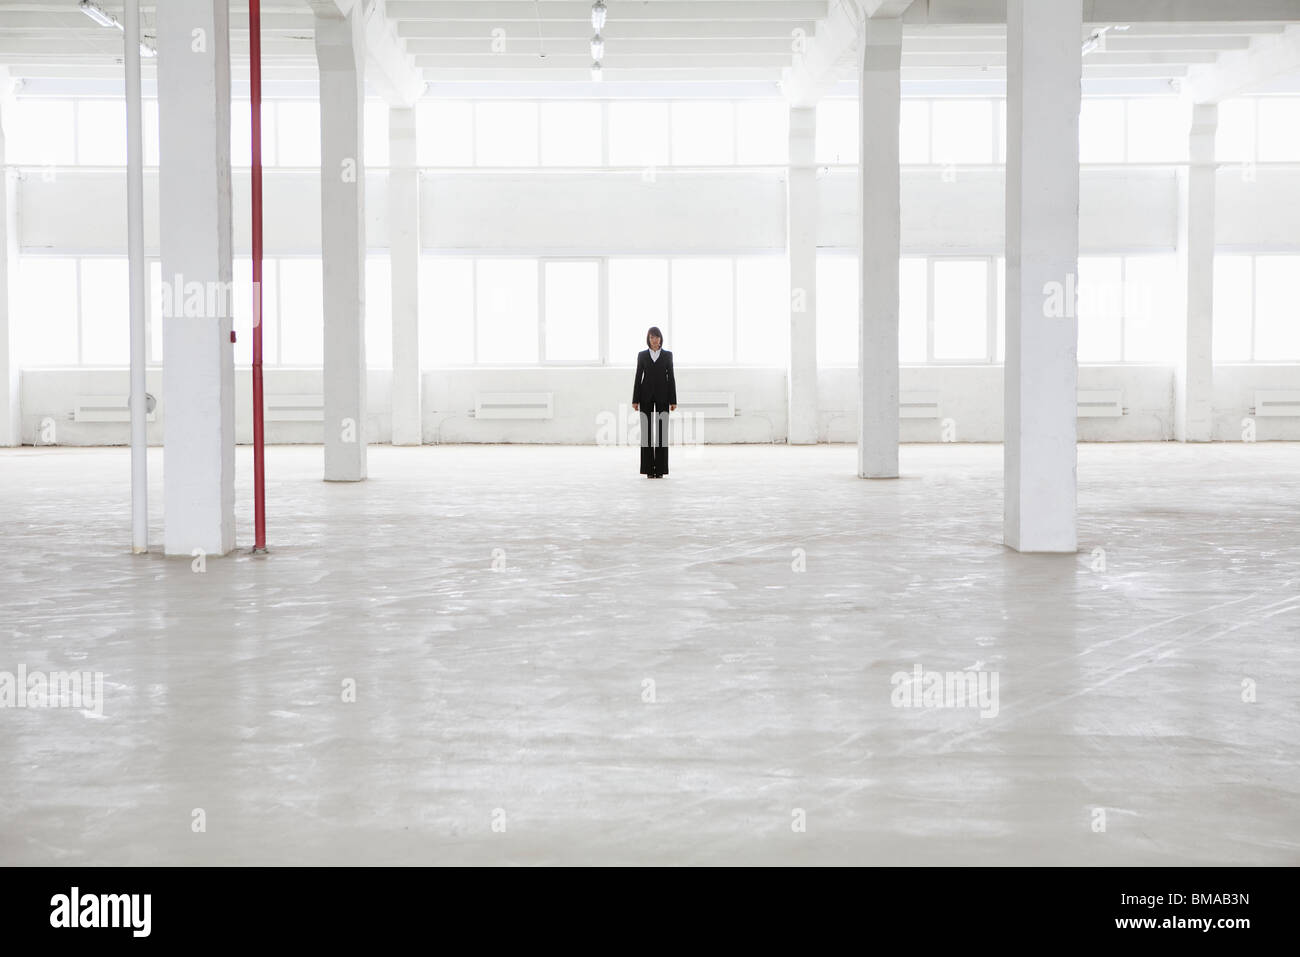 Distant woman stands in empty warehouse - Stock Image